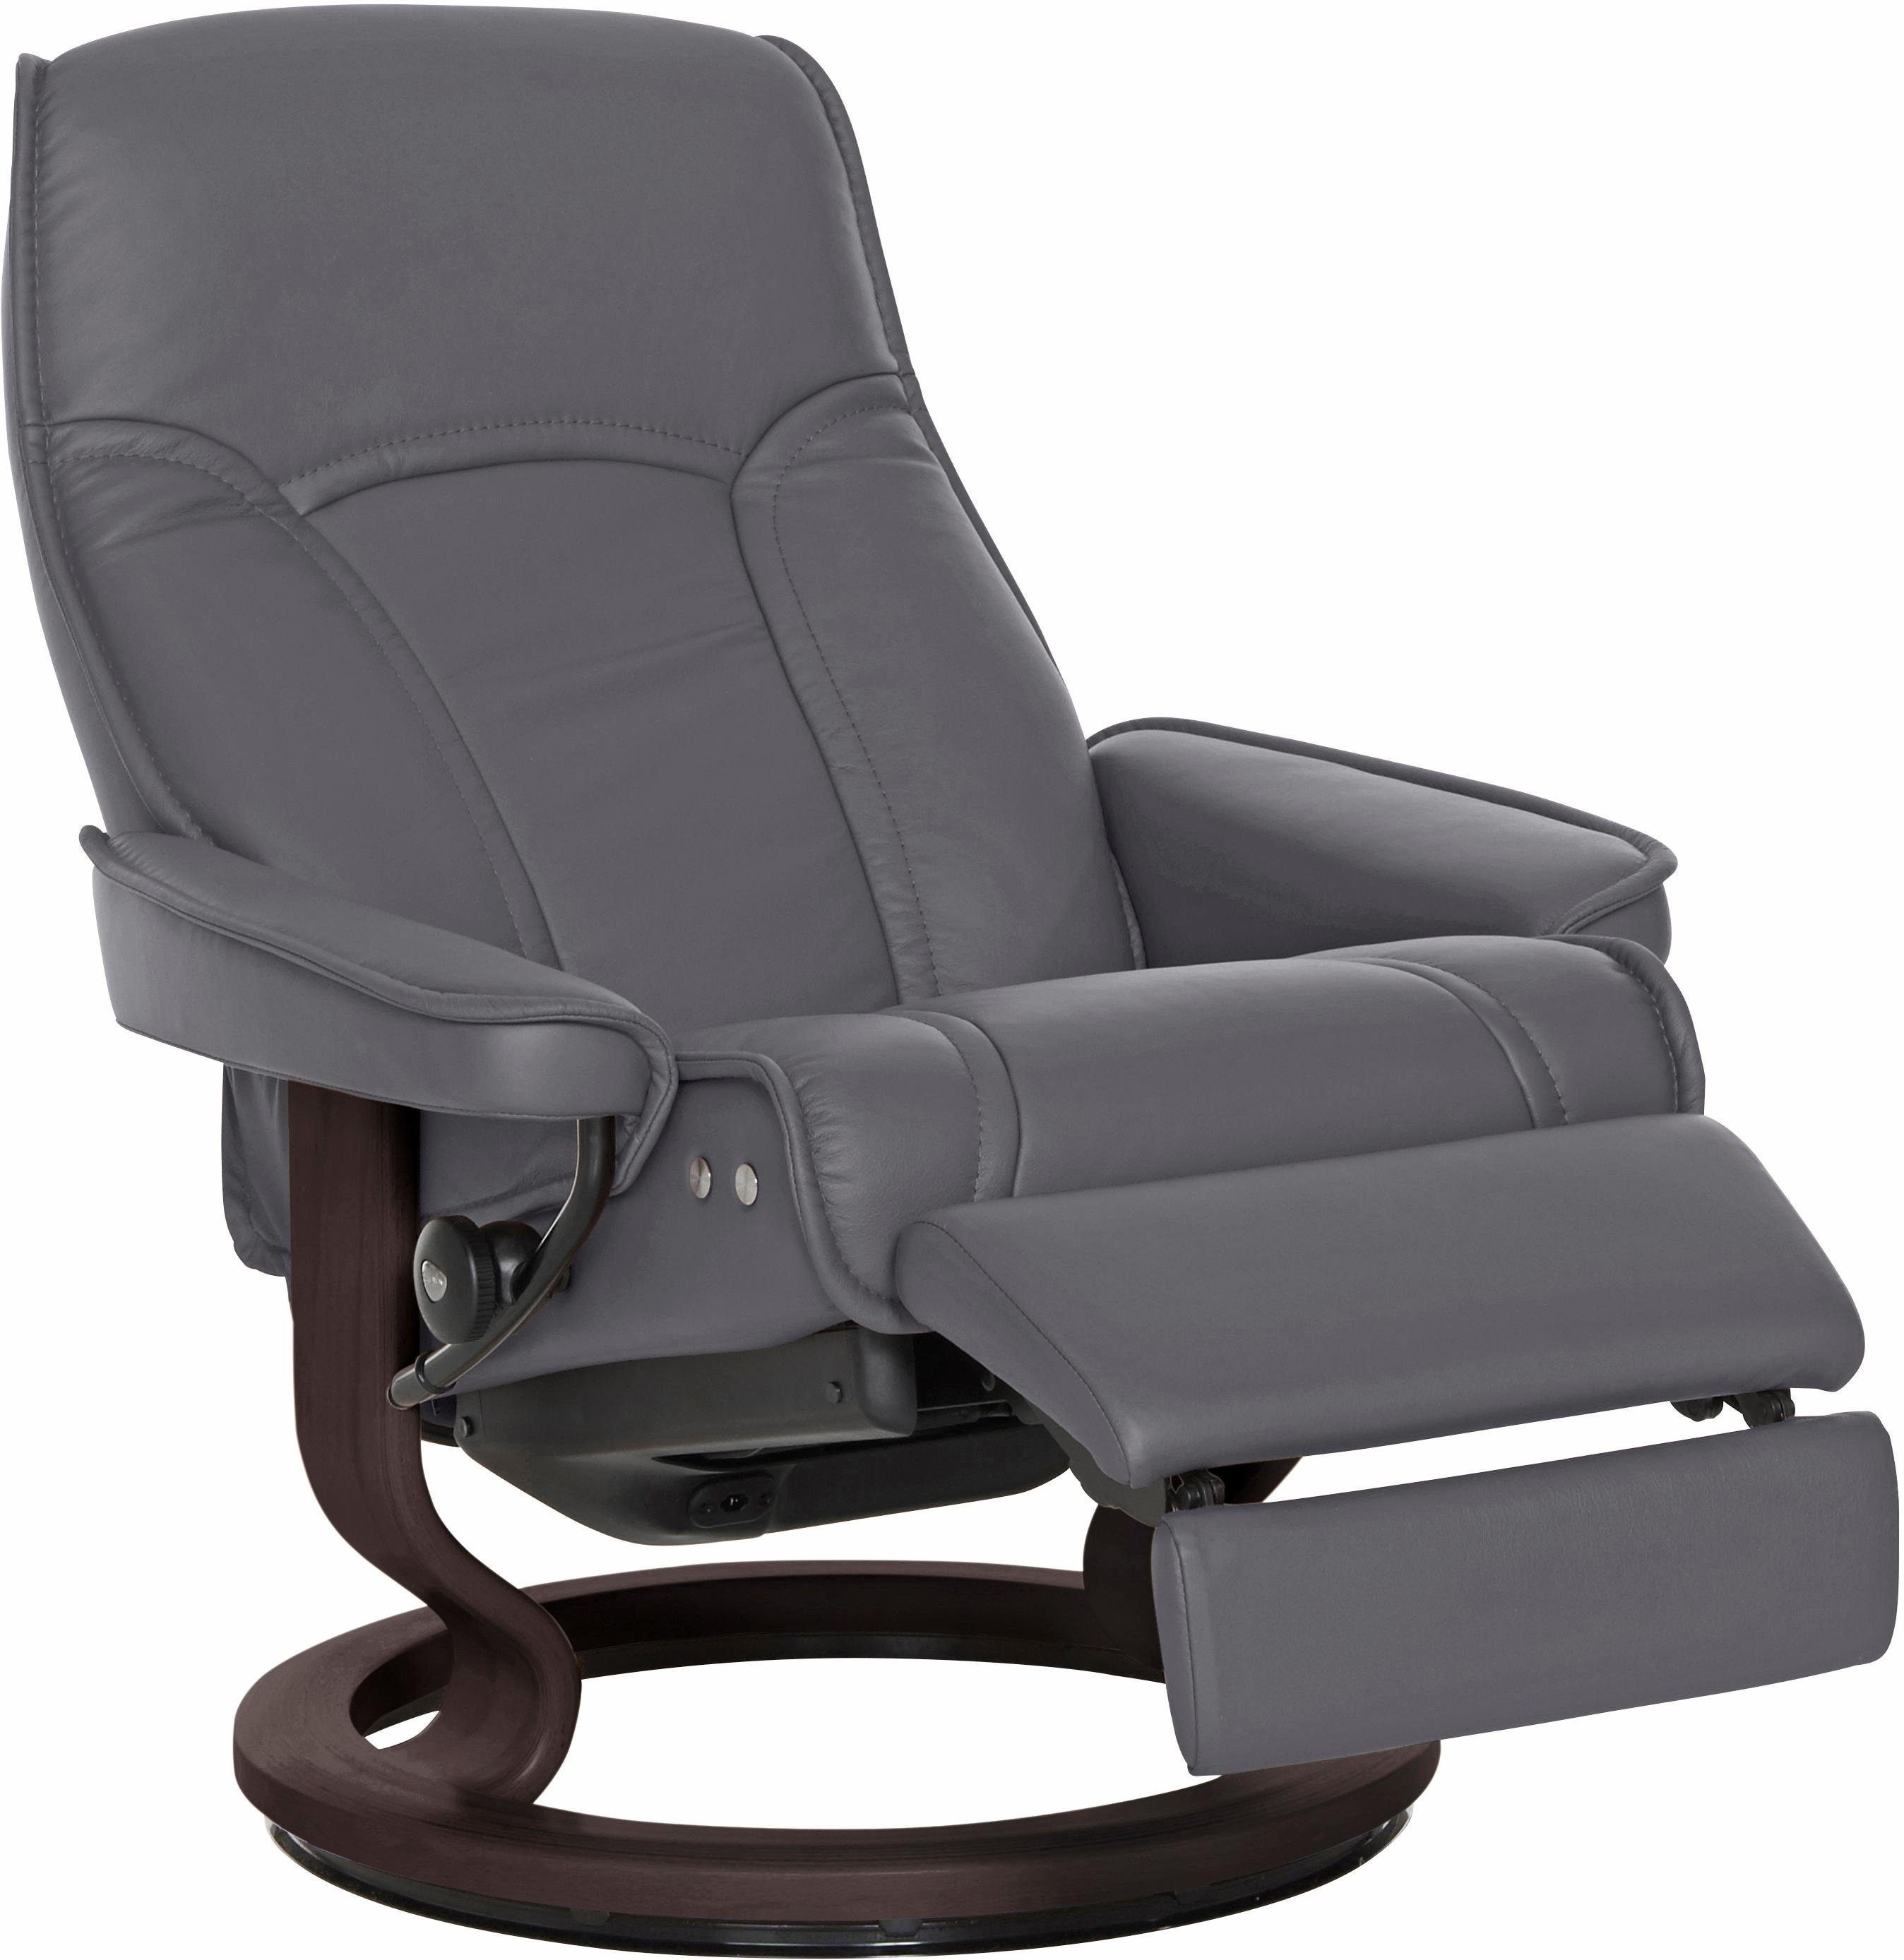 Stressless Sessel Sunrise.html Stressless Sessel Masse